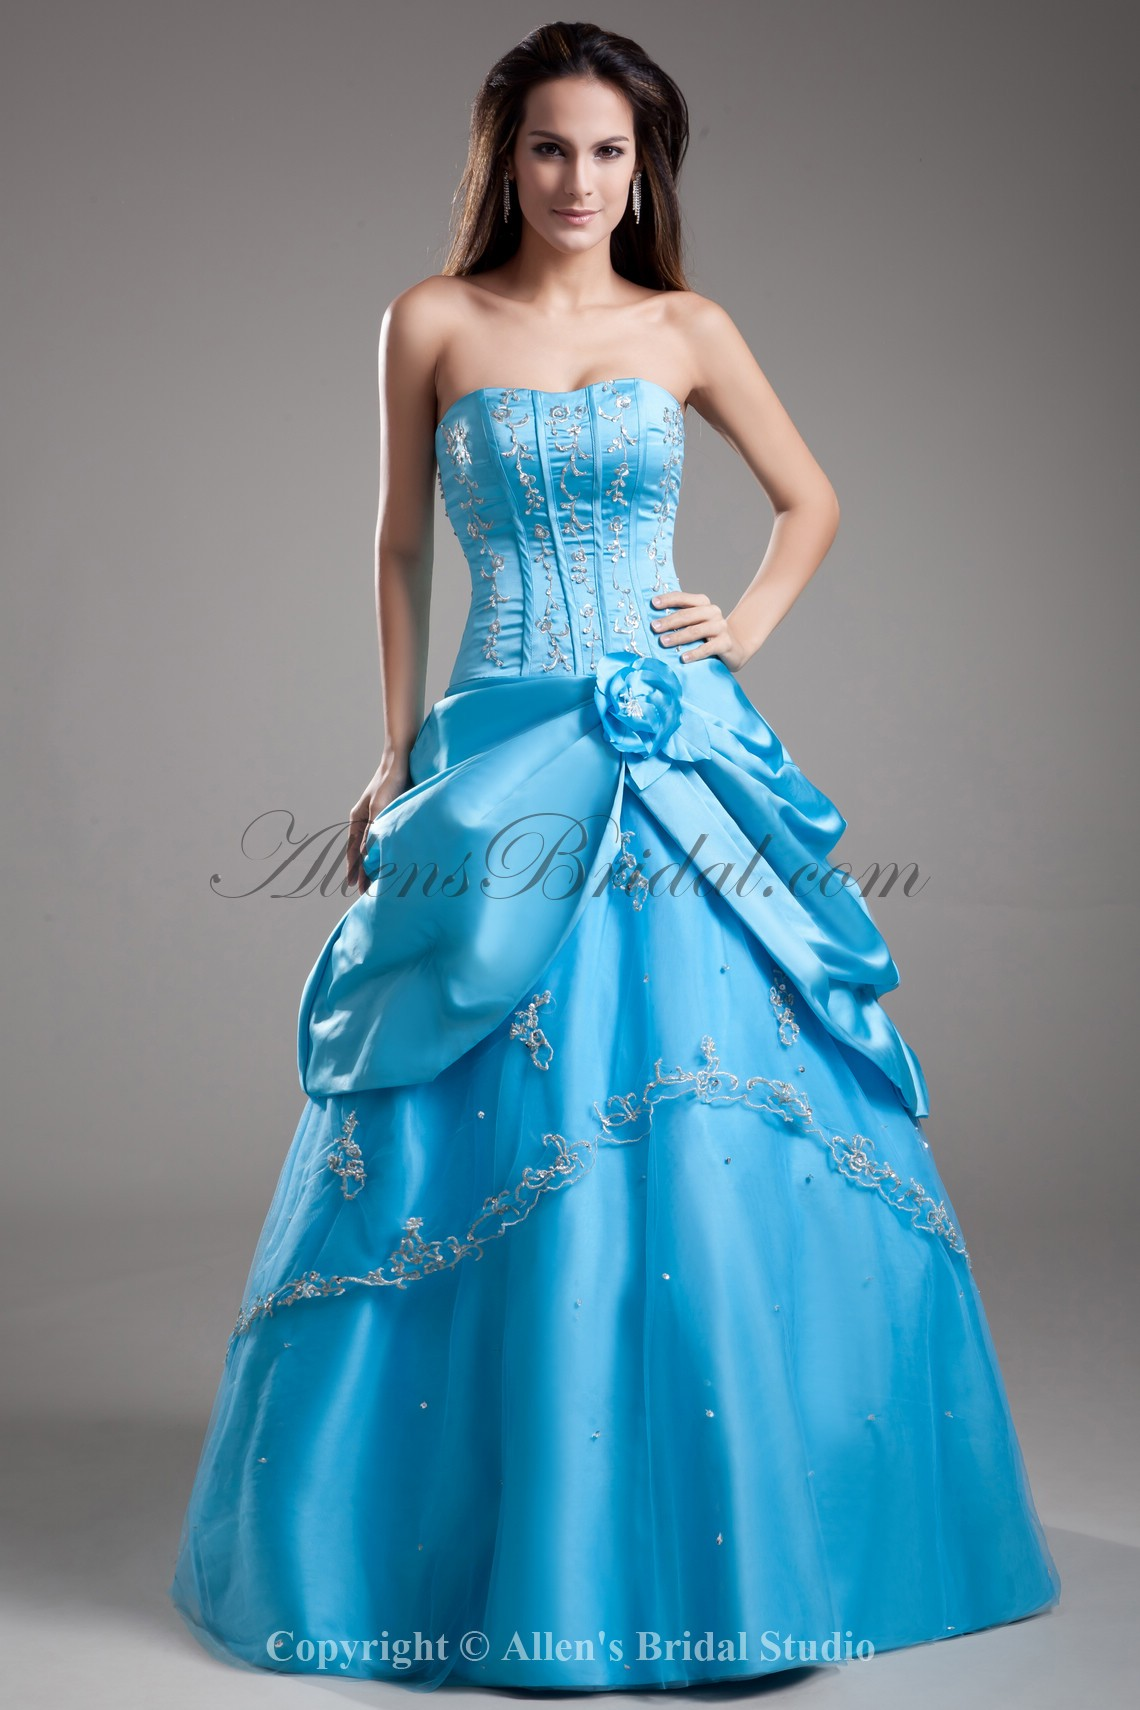 /686-5491/satin-sweetheart-floor-length-ball-gown-embroidered-prom-dress.jpg